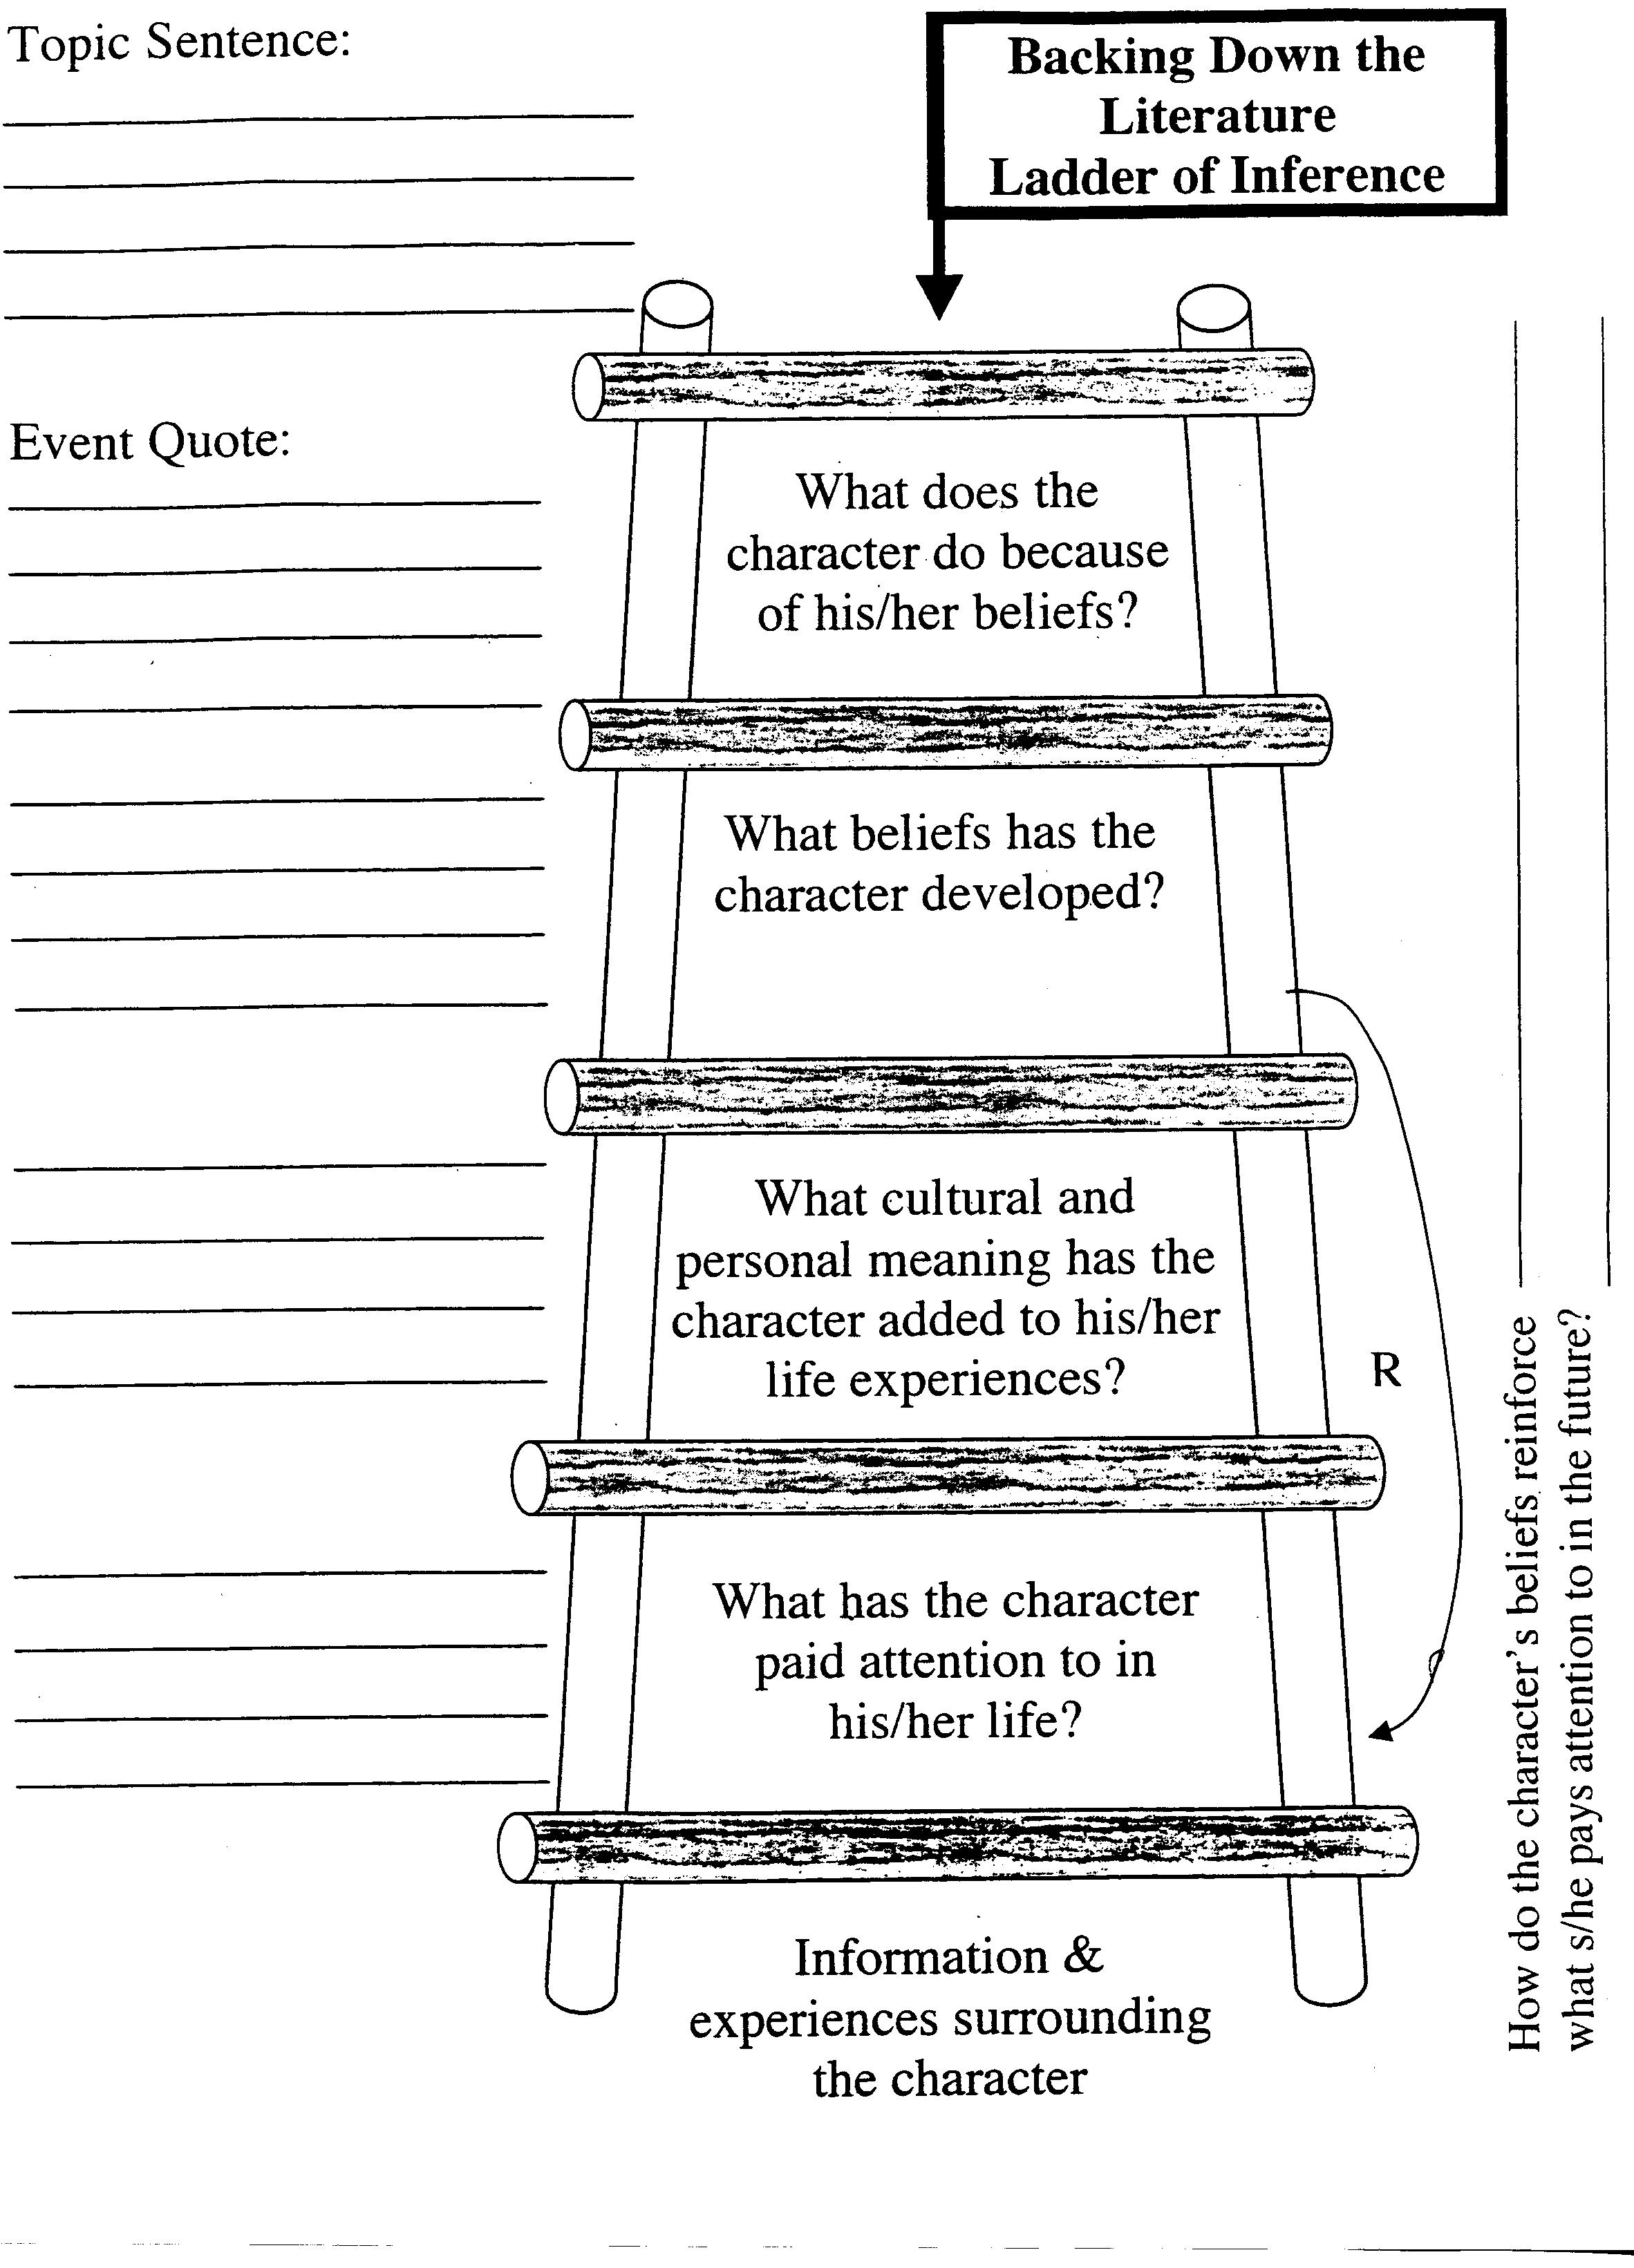 ladder of inference essay · climbing the ladder of inference a commonplace in management training is the ladder of inference the ladder was described by chris argyris.